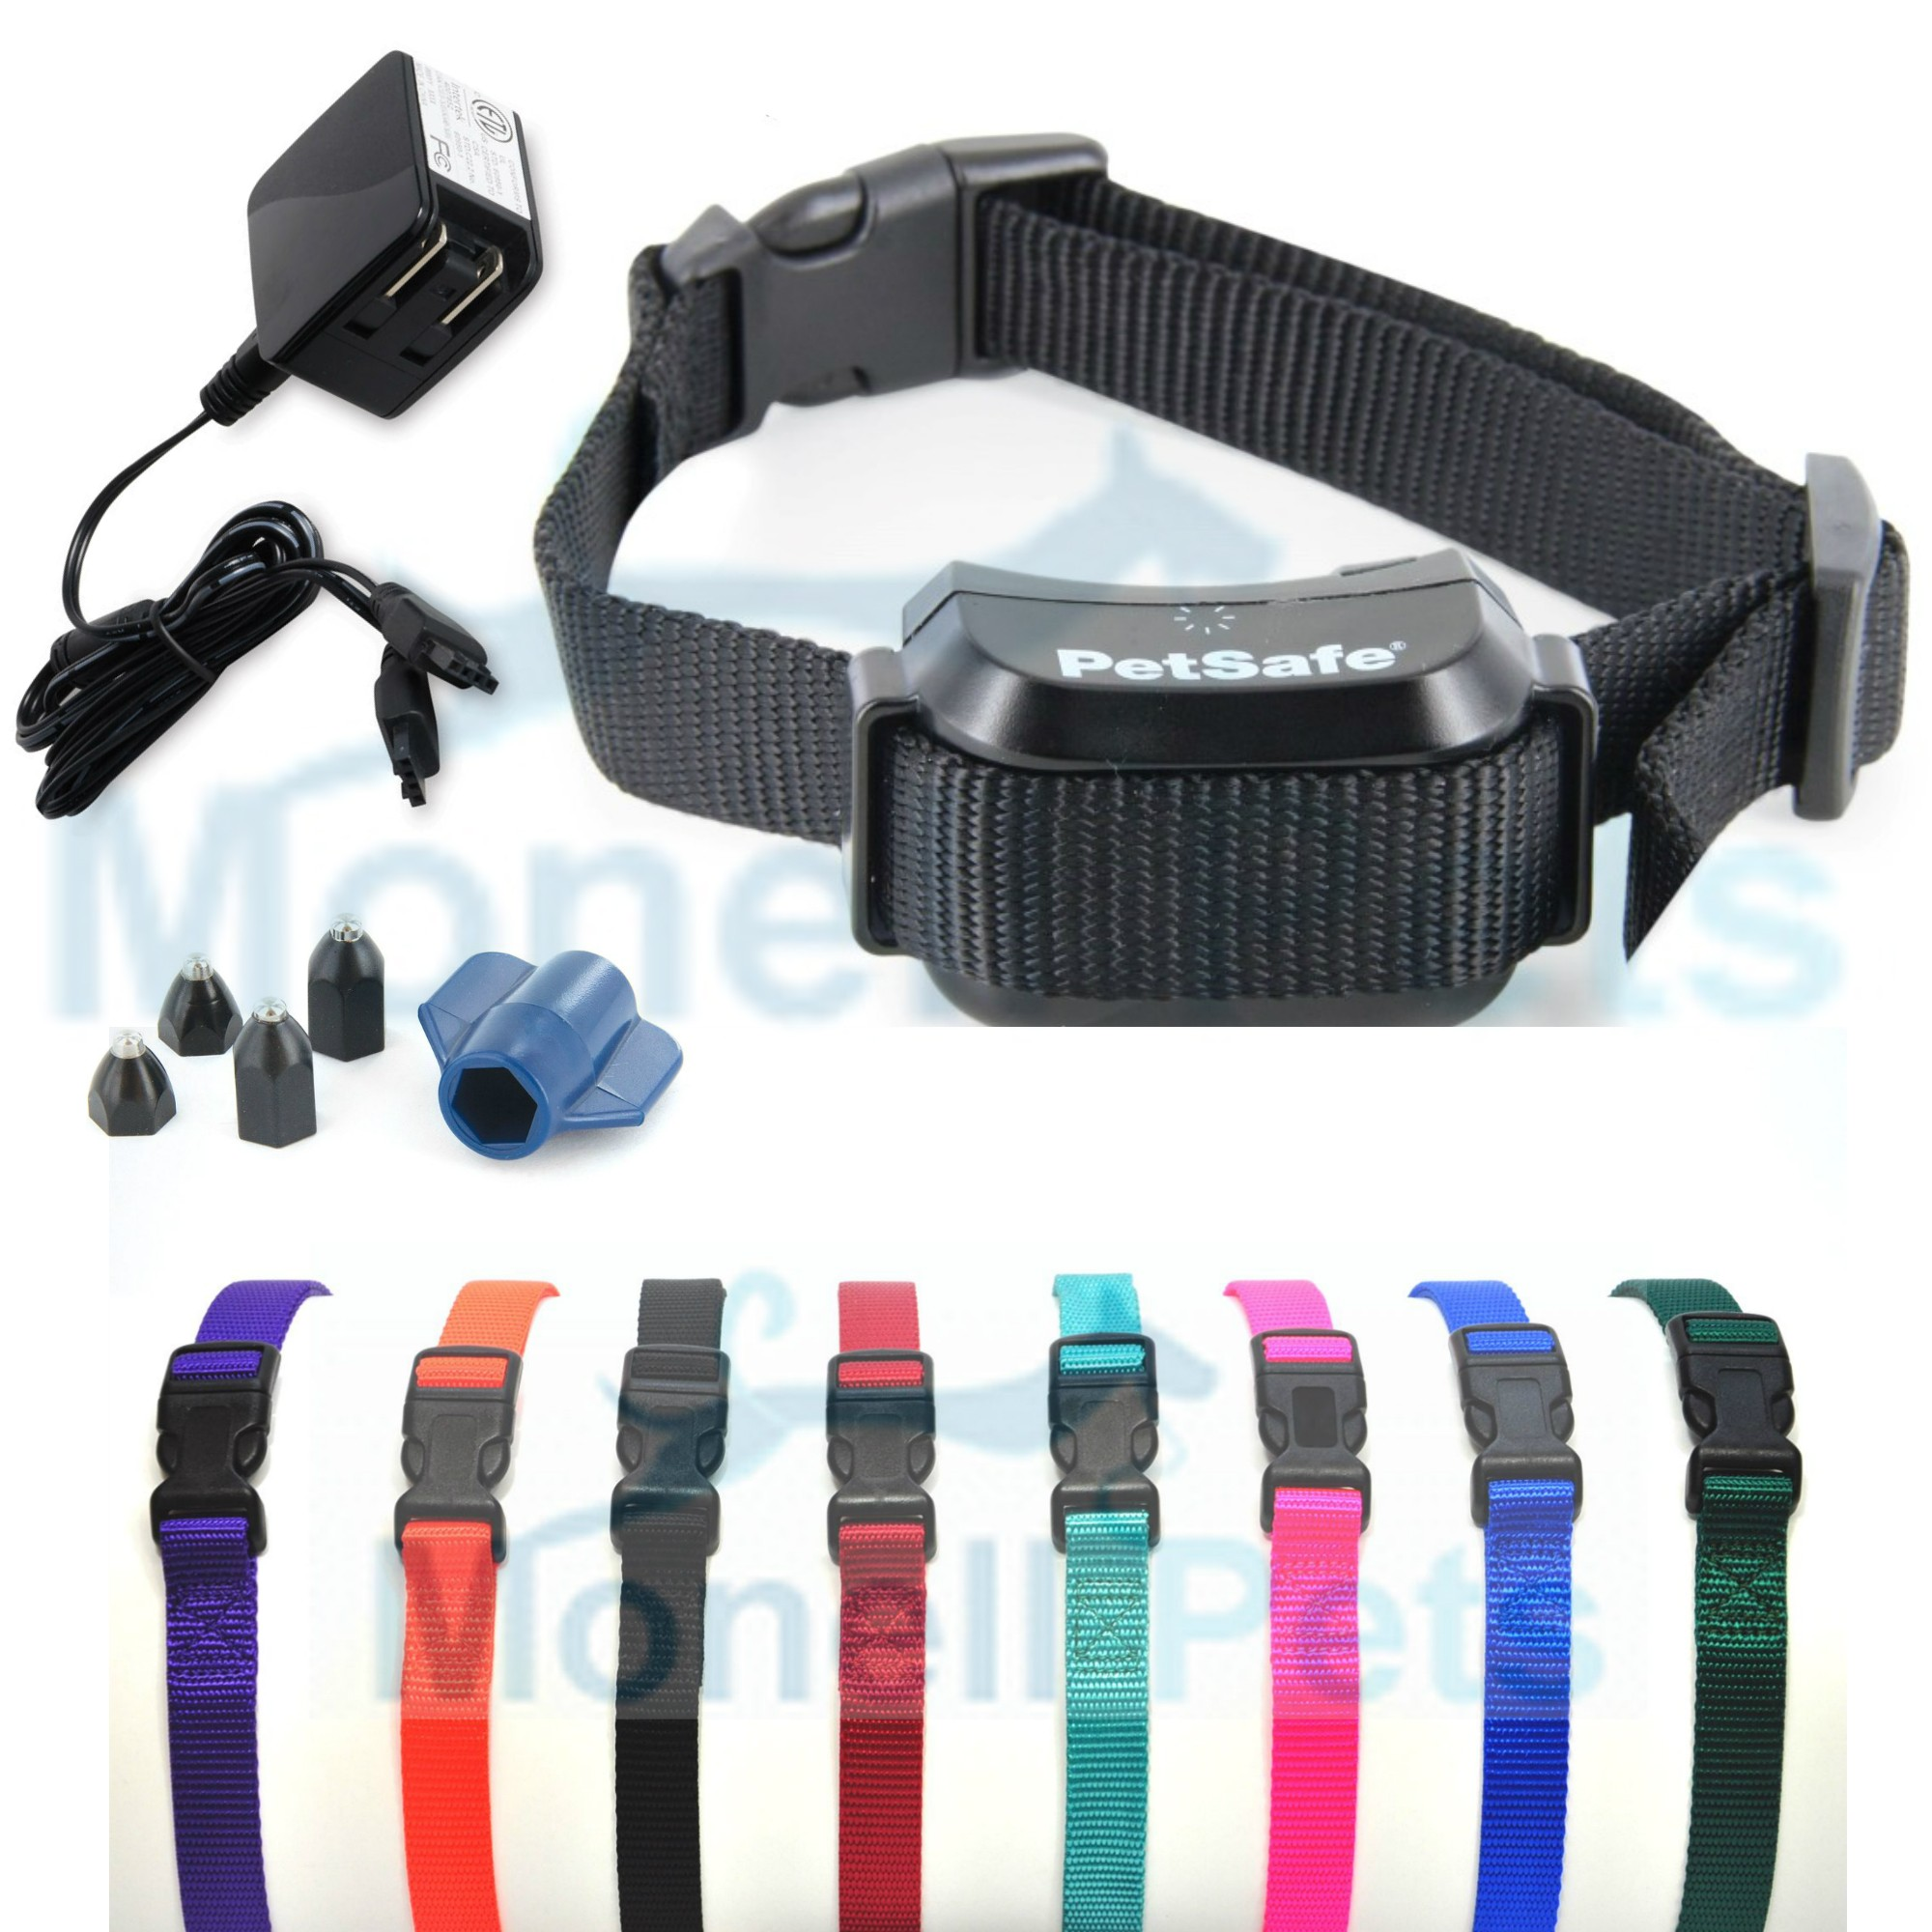 Petsafe Yardmax Rechargeable Dog Fence Receiver PIG00-11116 Extra Collar Strap